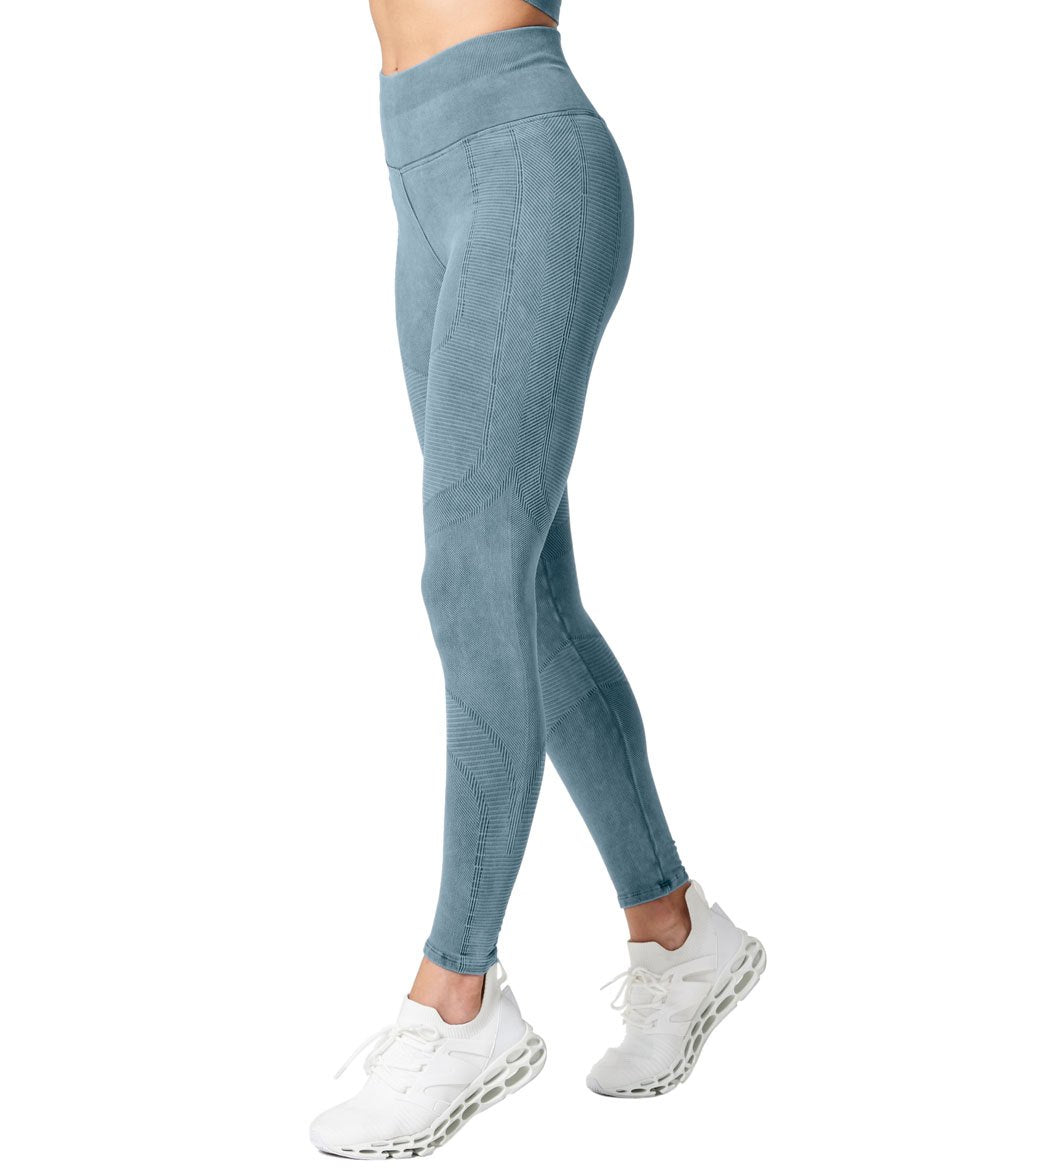 NUX One By Seamless Yoga Leggings - Wash Steely Skies Vintage Spandex